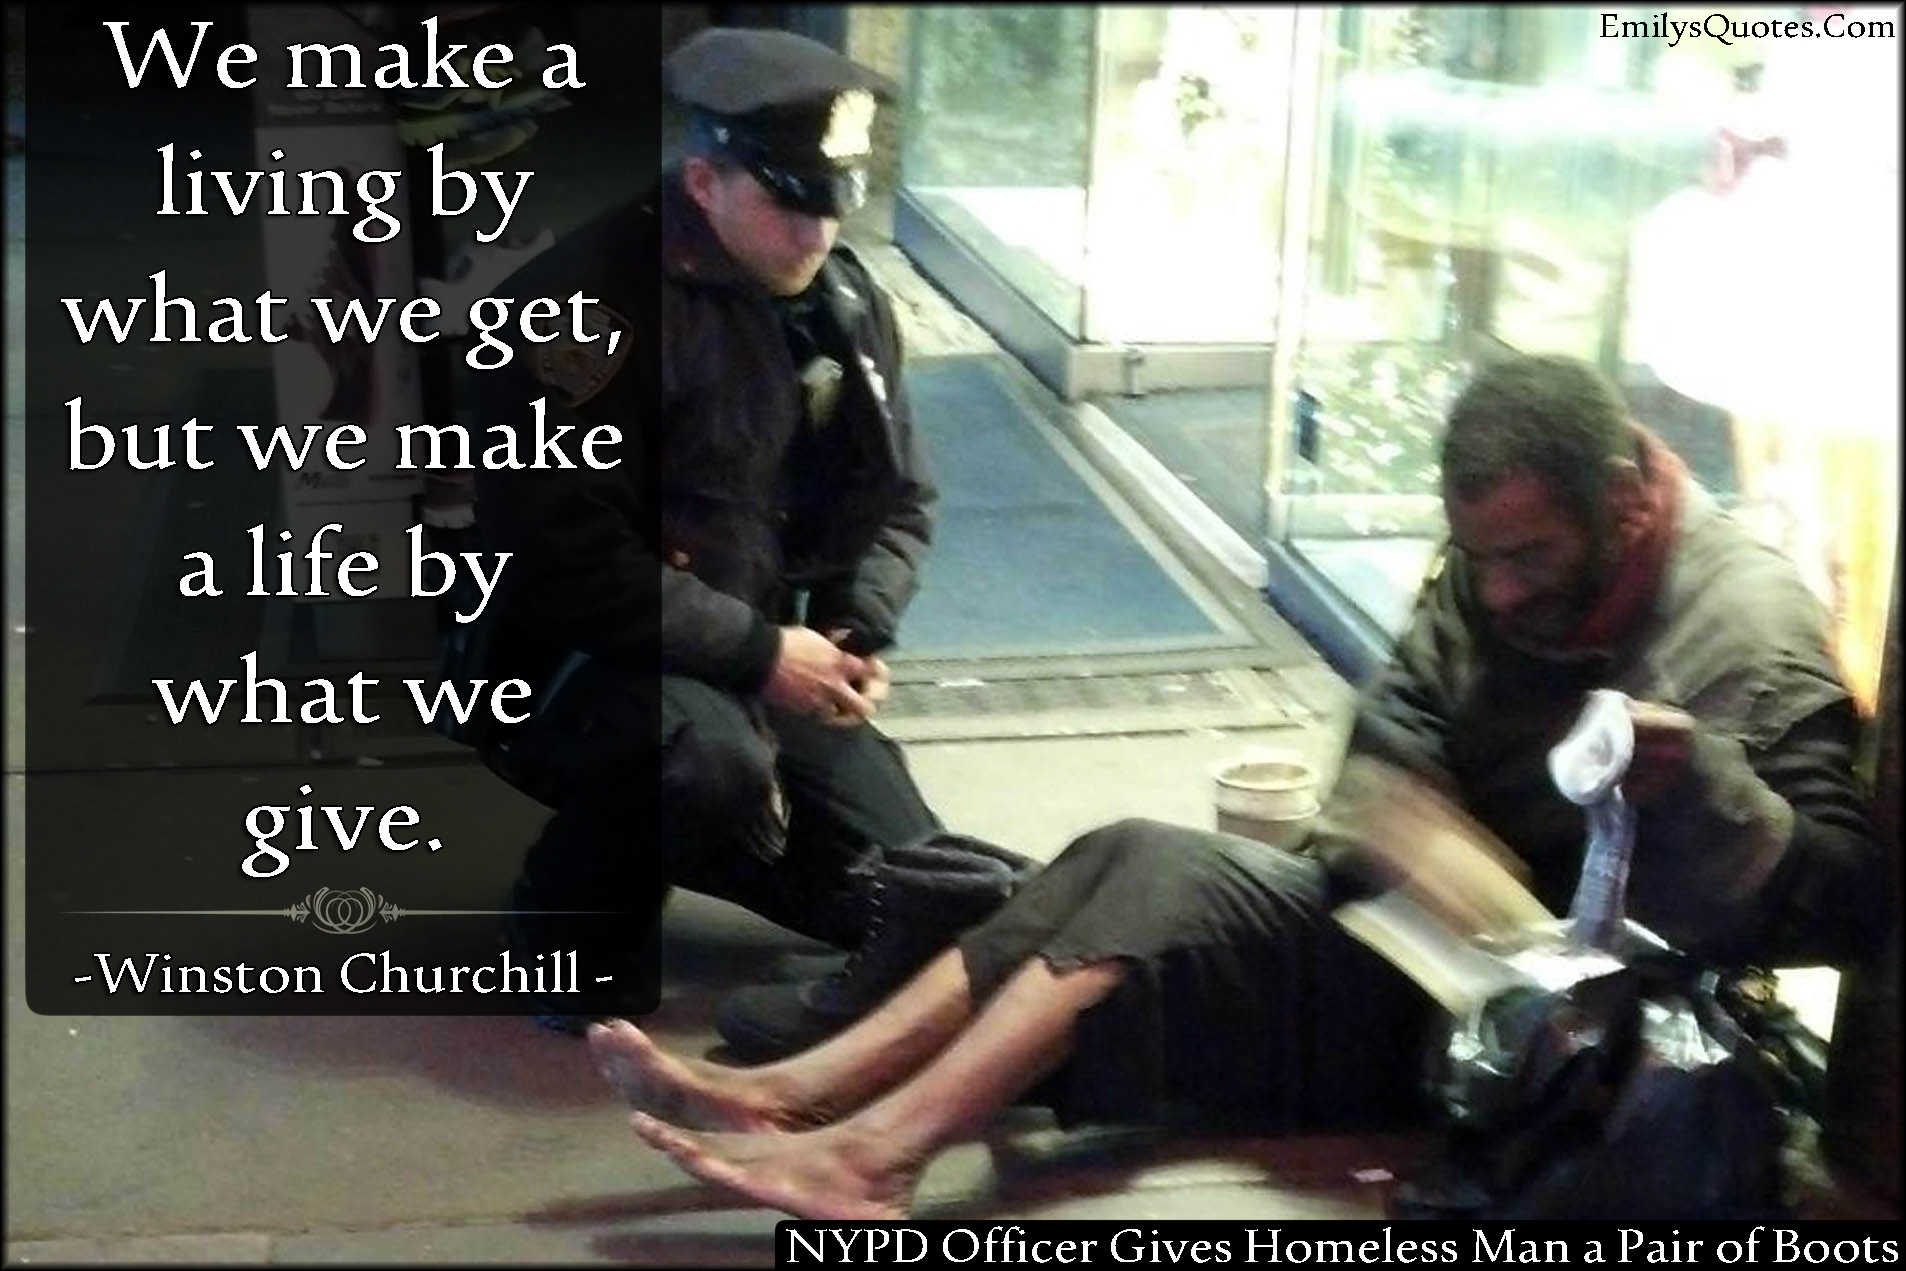 EmilysQuotes.Com - life, being a good person, inspirational, amazing, great, give, get, Winston Churchill